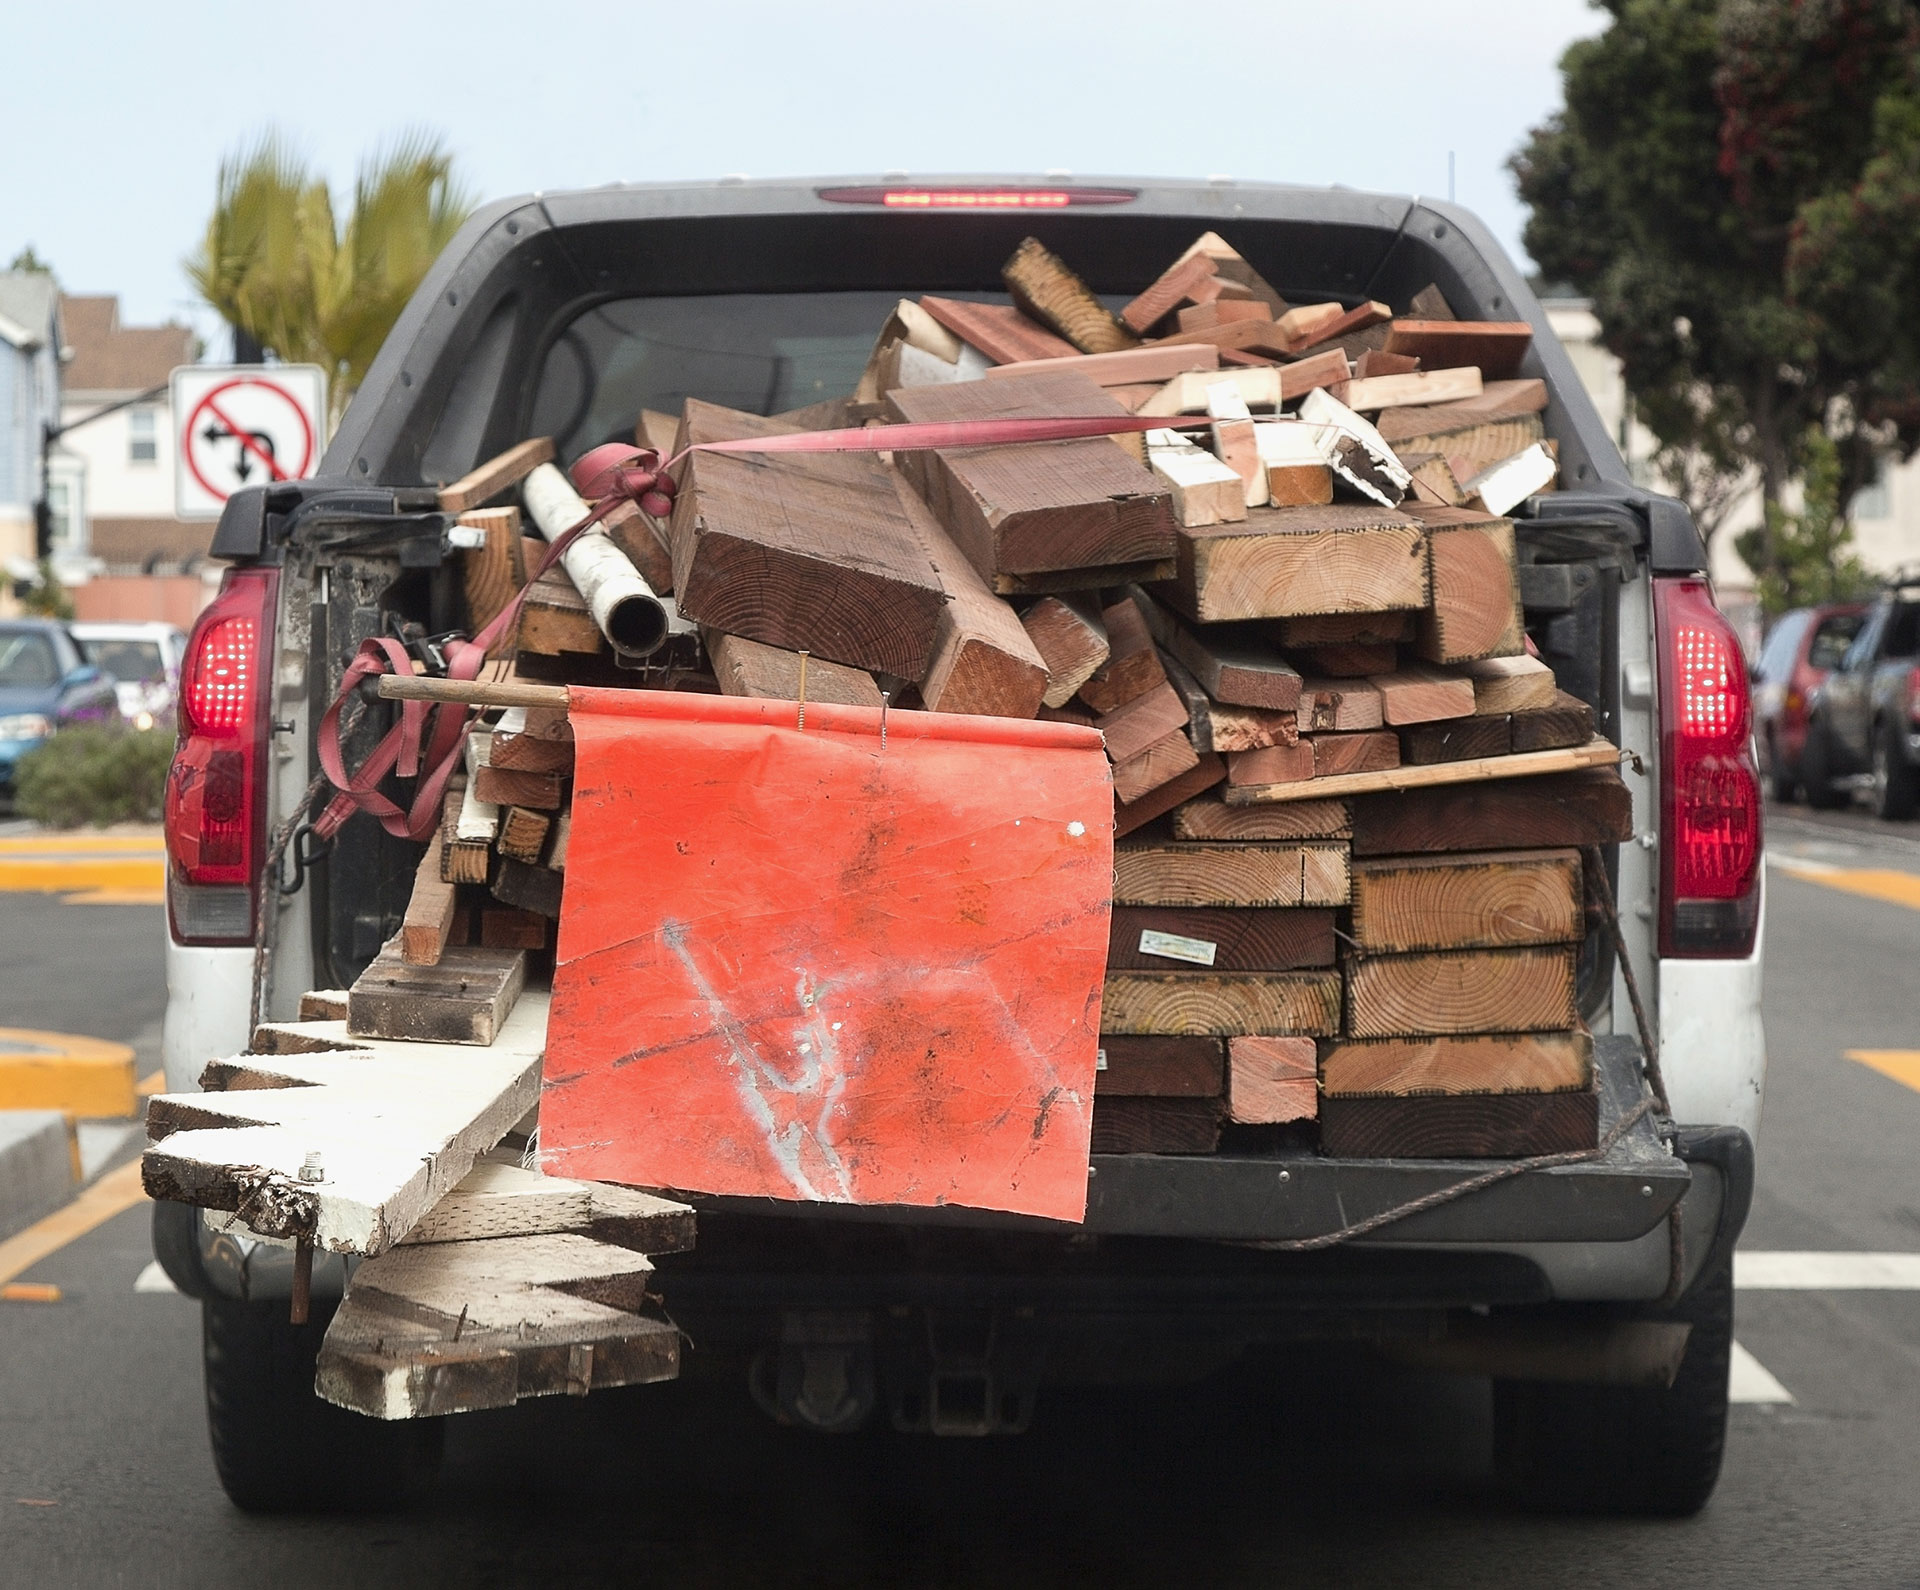 Sue for Car Accident Injuries from Road Debris